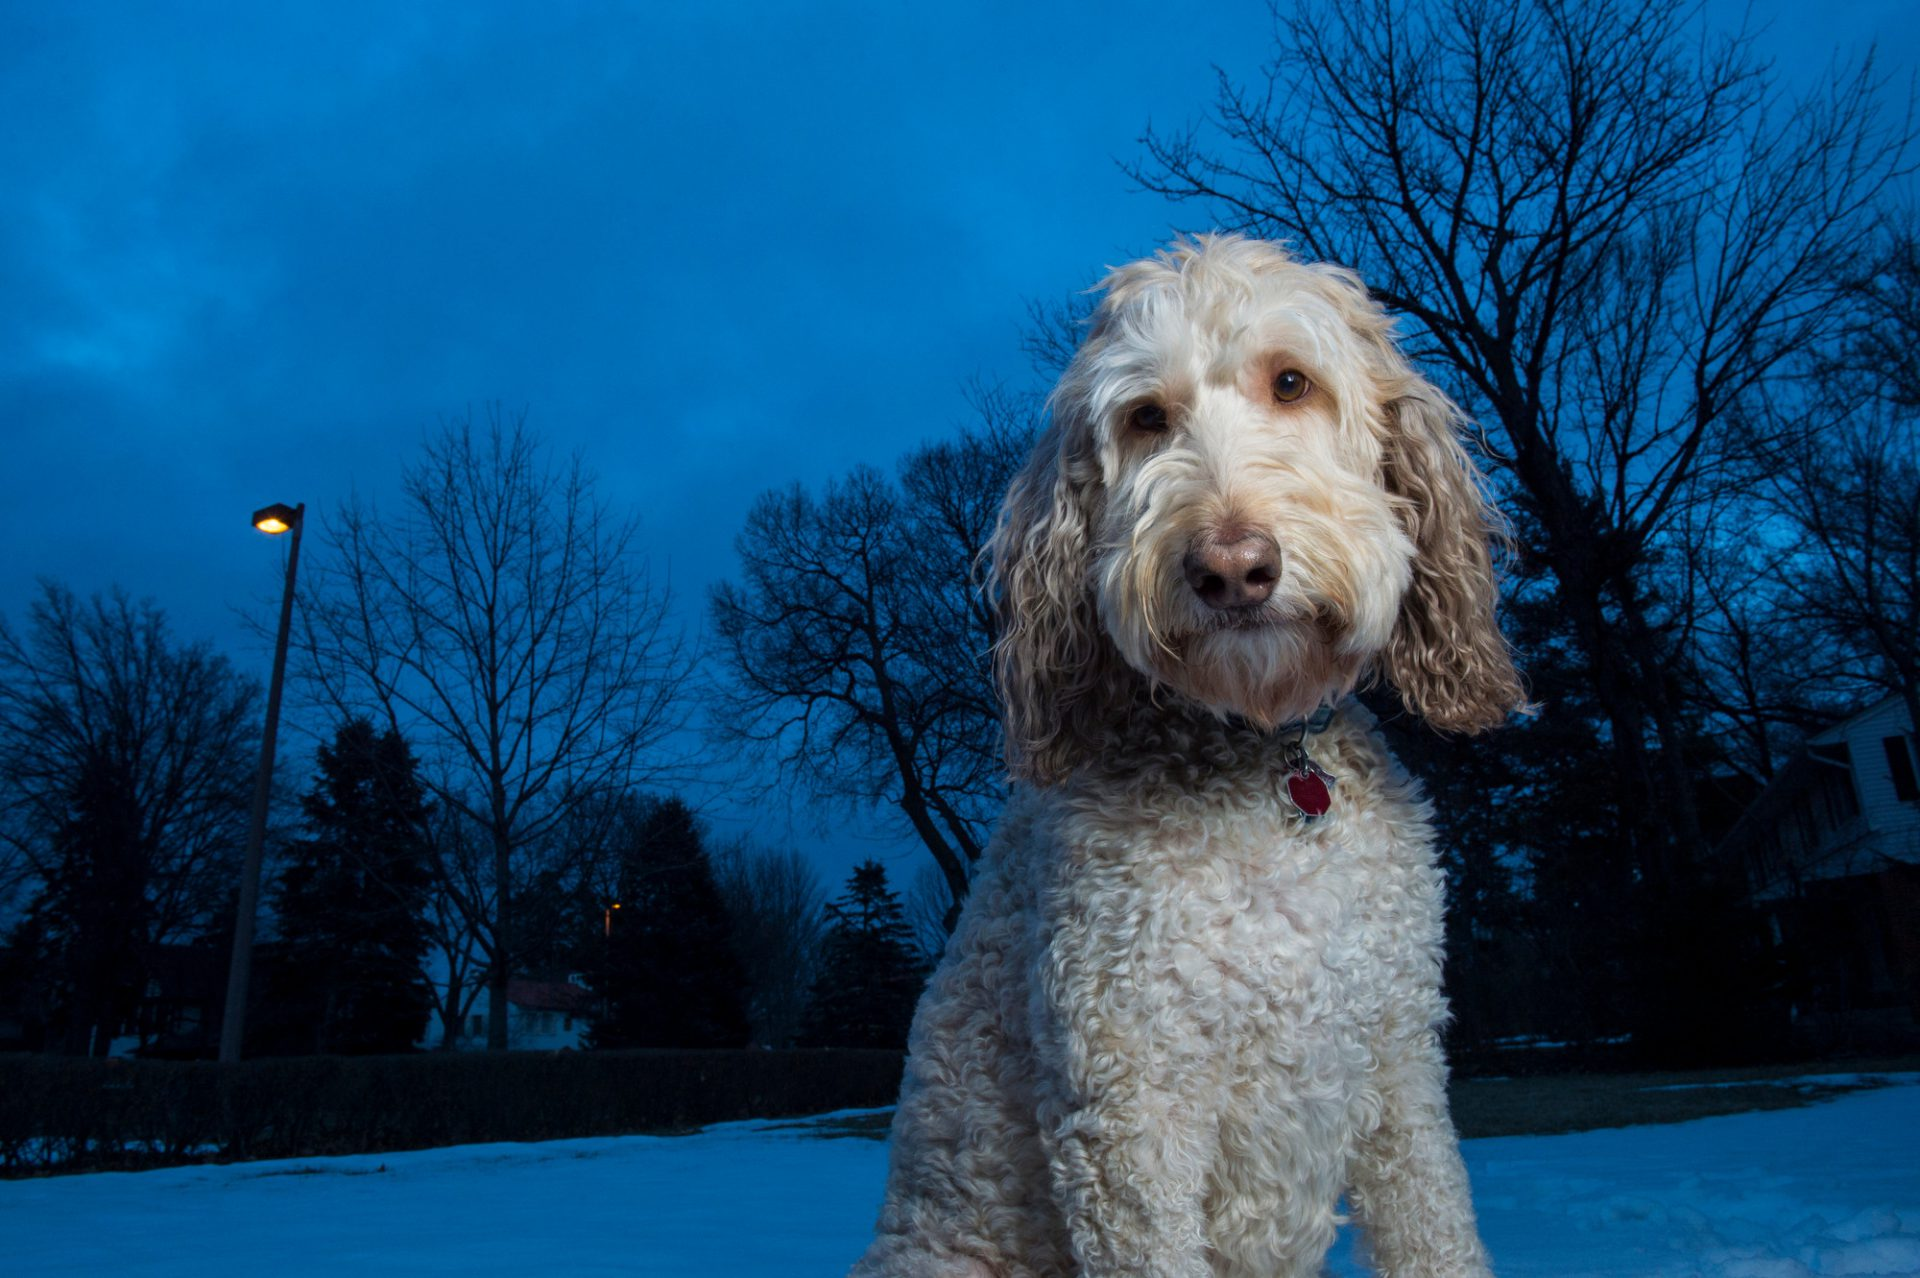 Photo: A dog poses for his portrait on a snow covered lawn at dusk.